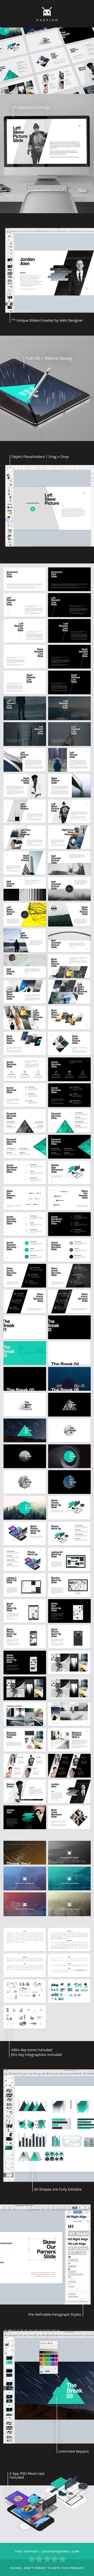 Kaspian - Keynote Progressive Template is a professional Keynote/ Presentation. You can have a great business presentation by this template. It's so easy and clean.